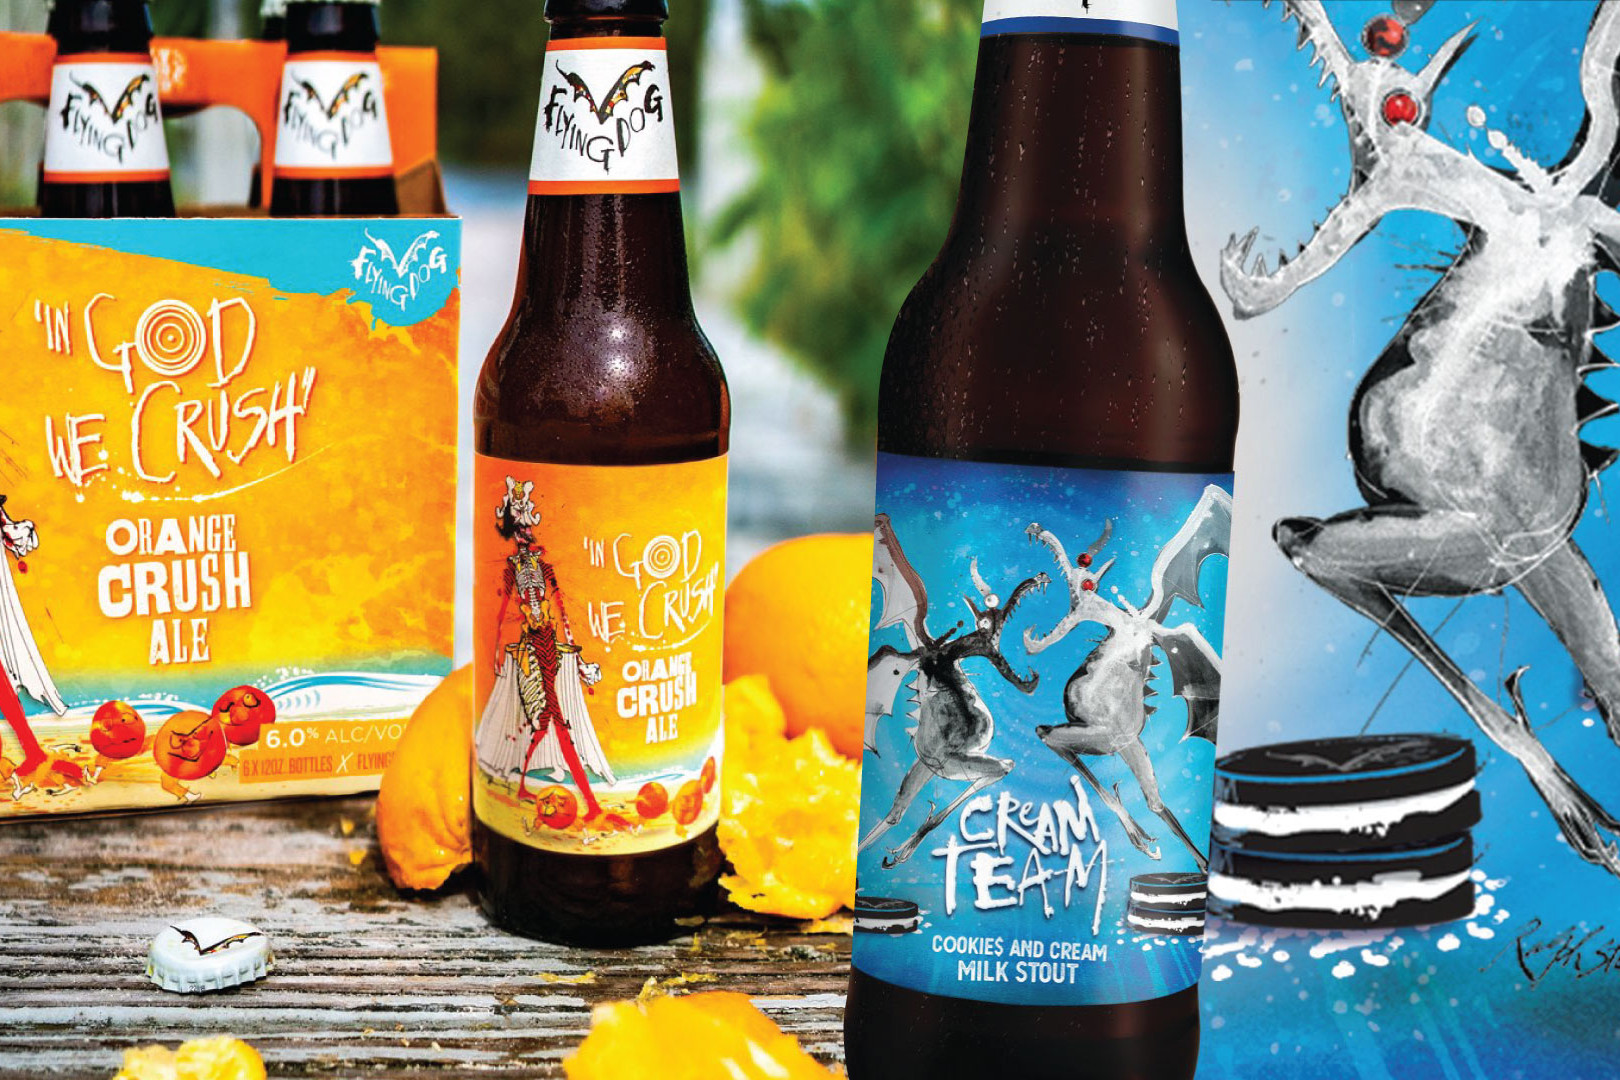 THE LATEST FROM FLYING DOG